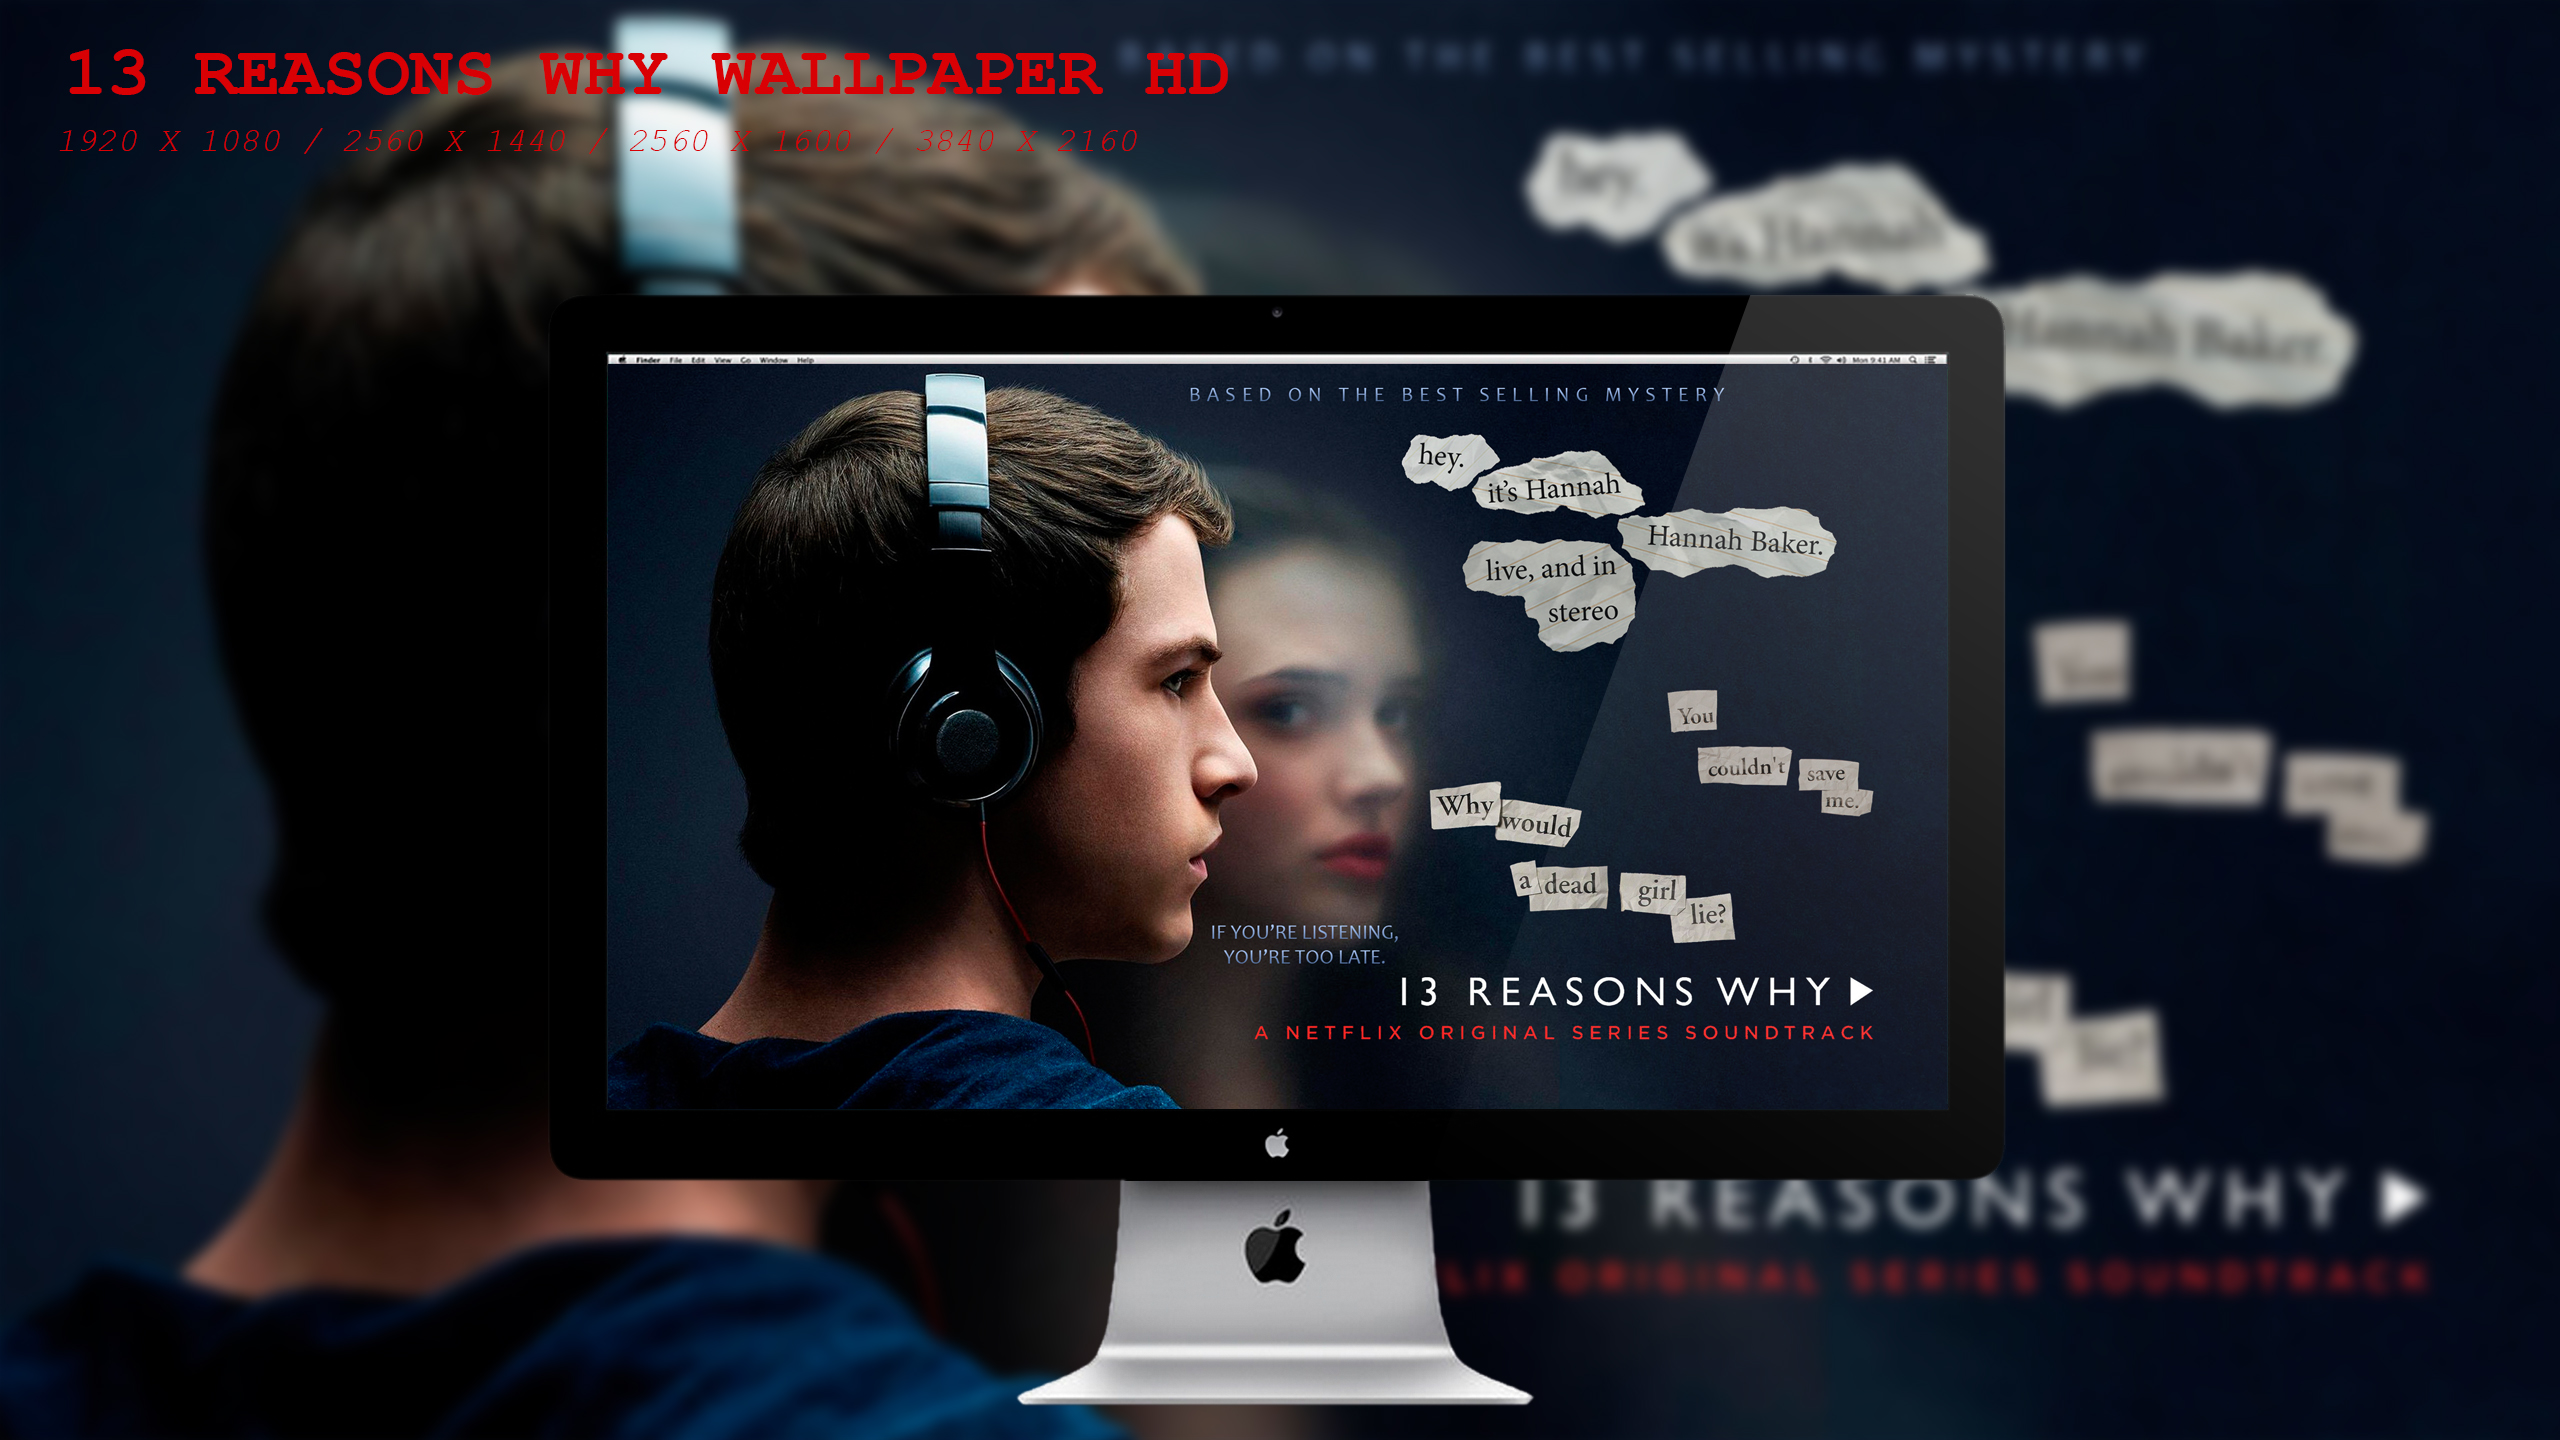 13 Reasons Why Wallpaper Hd By Beaware8 On Deviantart